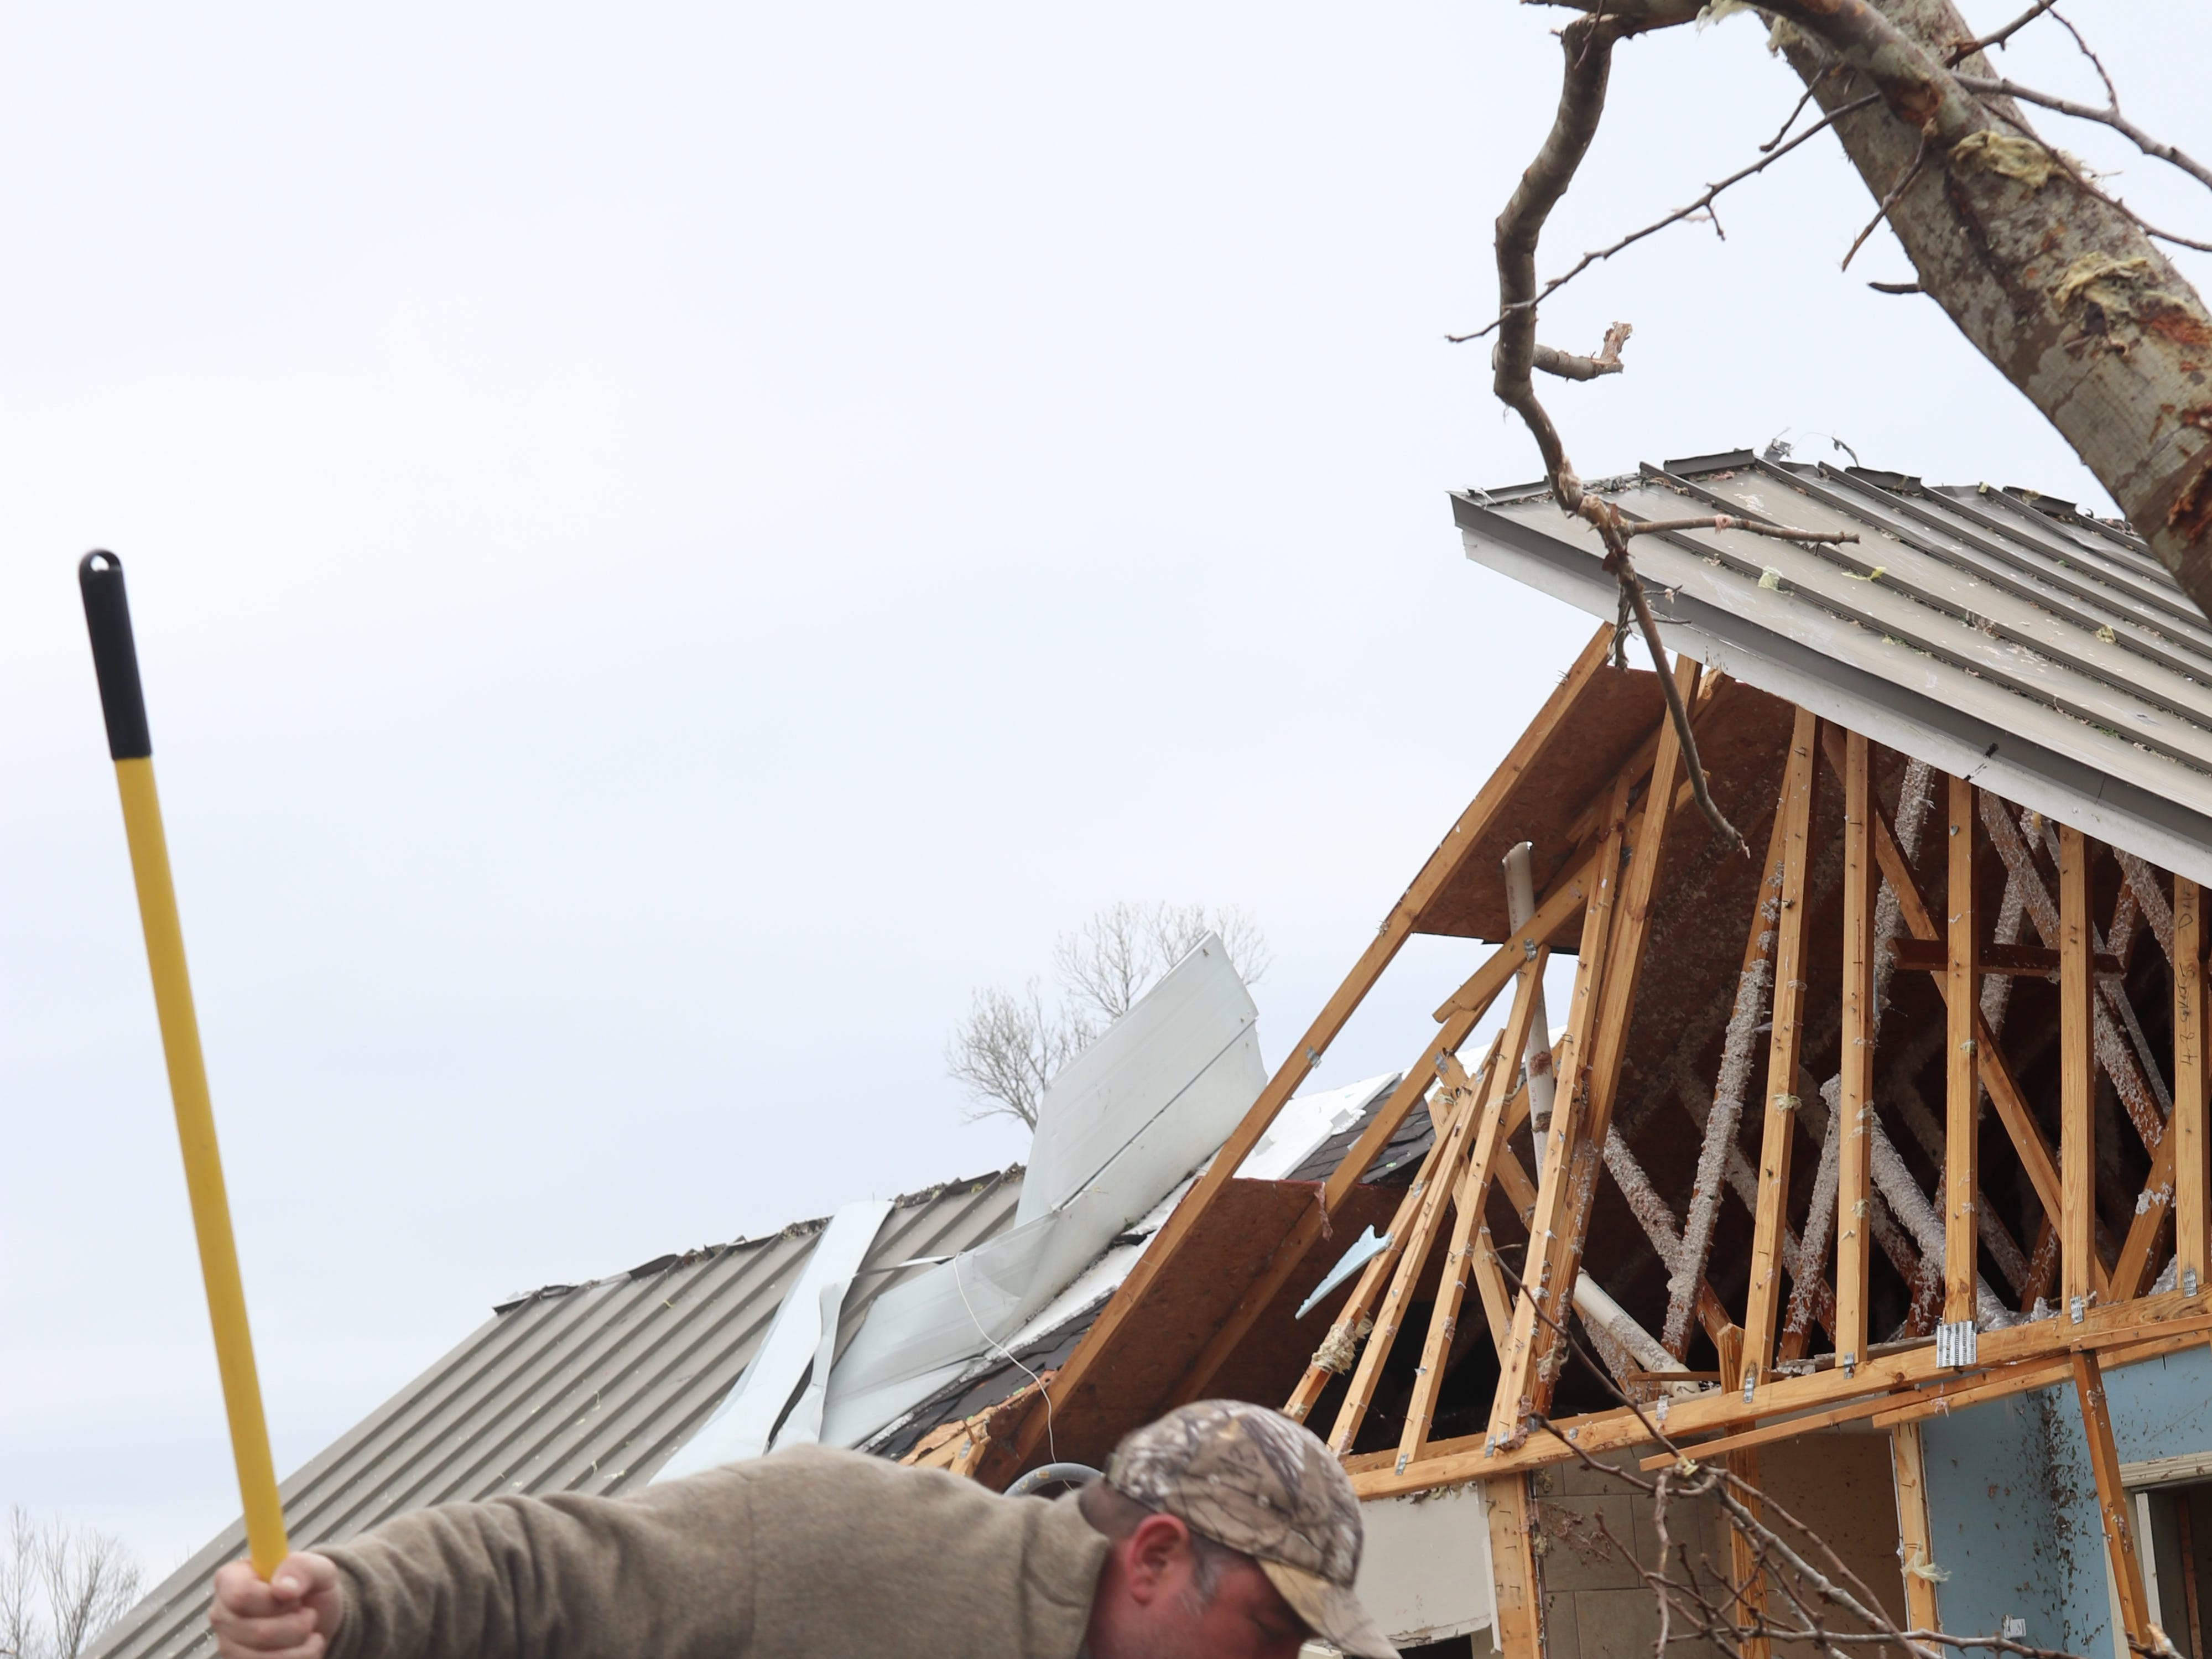 David Byler pulls photos from a pile of debris outside his home which was badly damaged by a tornado Sunday March 3.